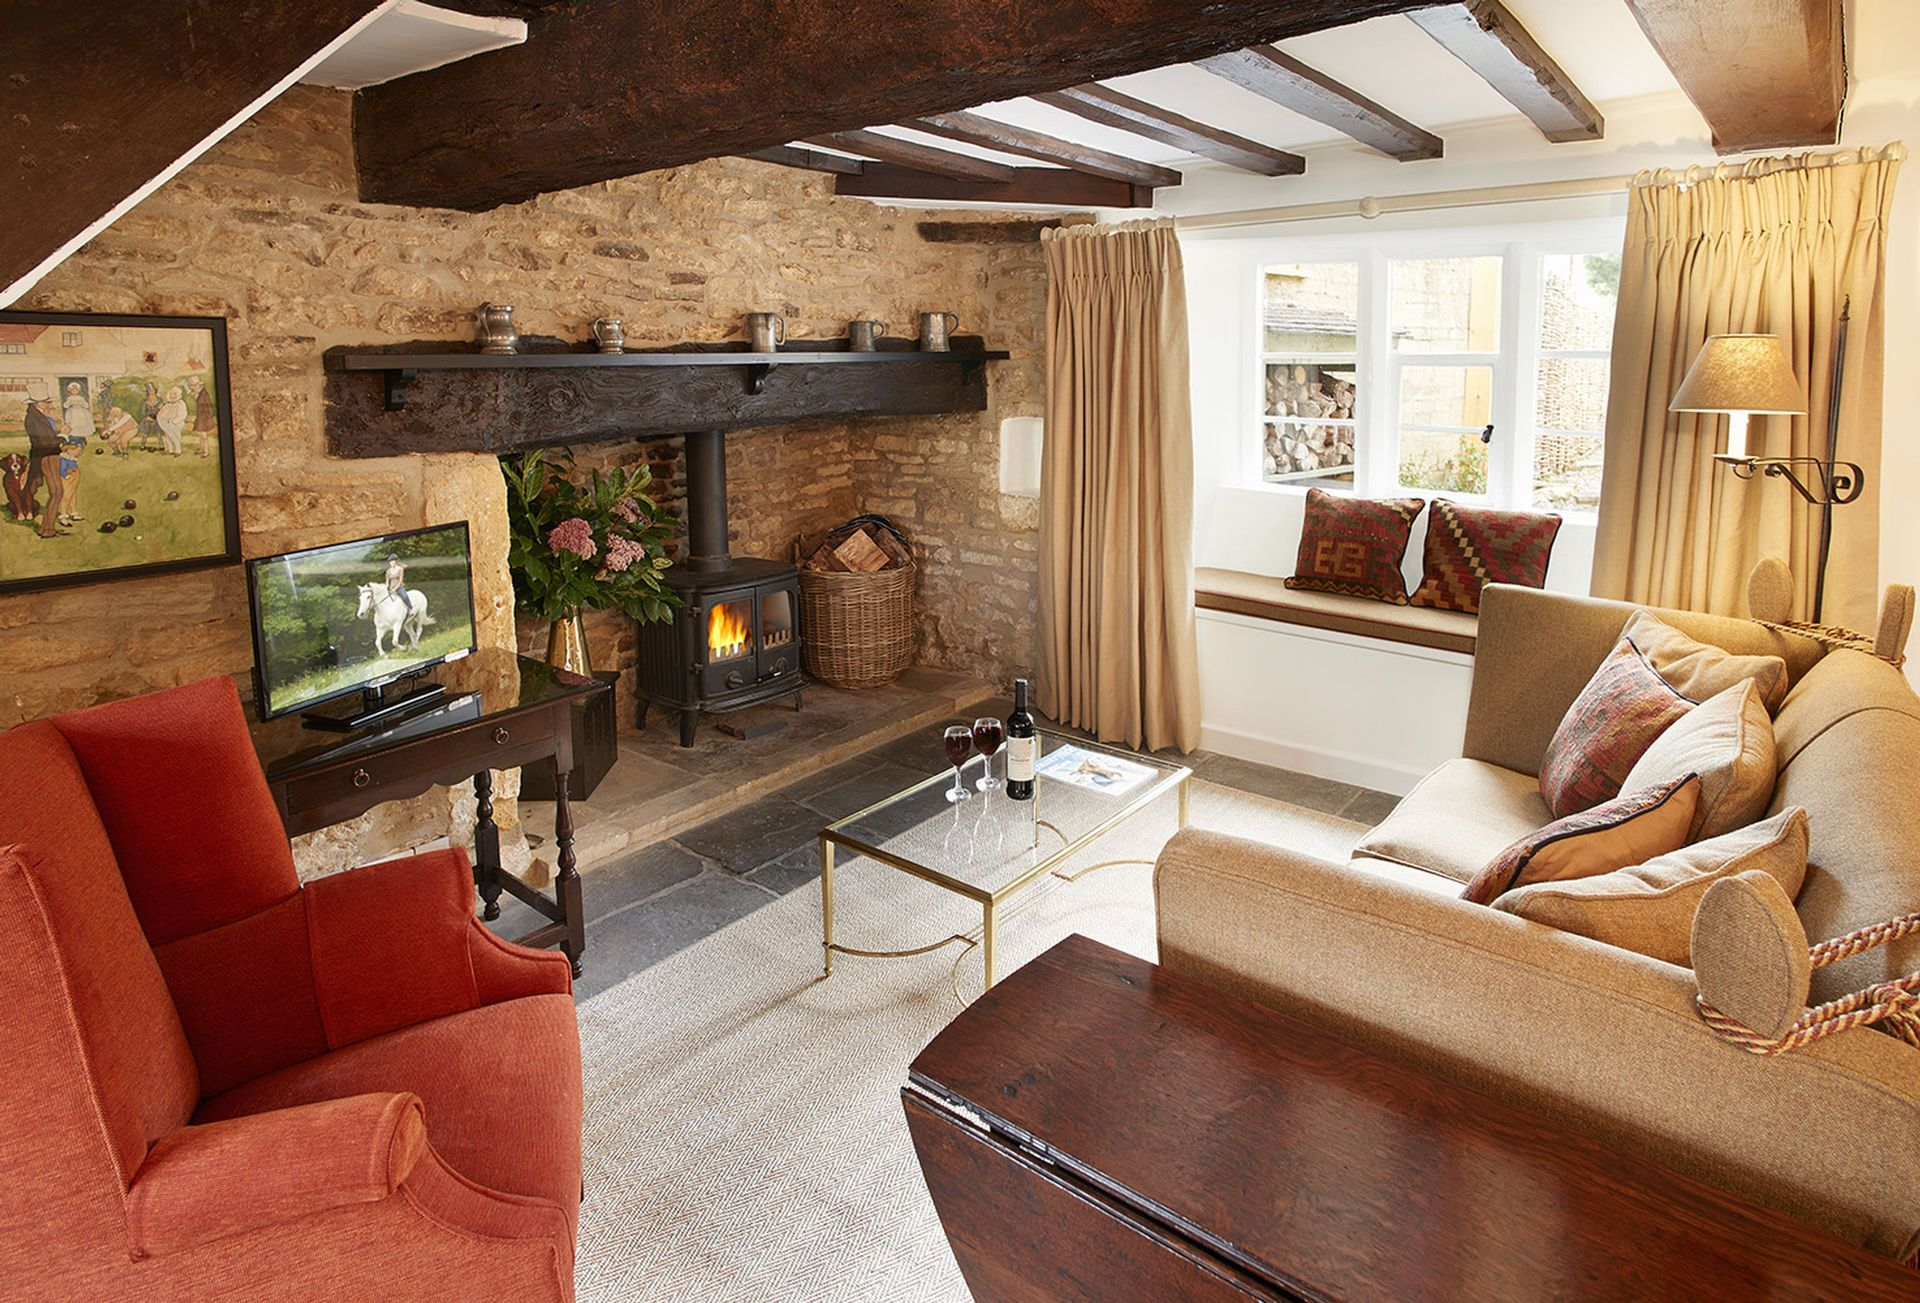 Astounding Felltree Cottage Stow On The Wold And Surrounding Villages Home Interior And Landscaping Palasignezvosmurscom